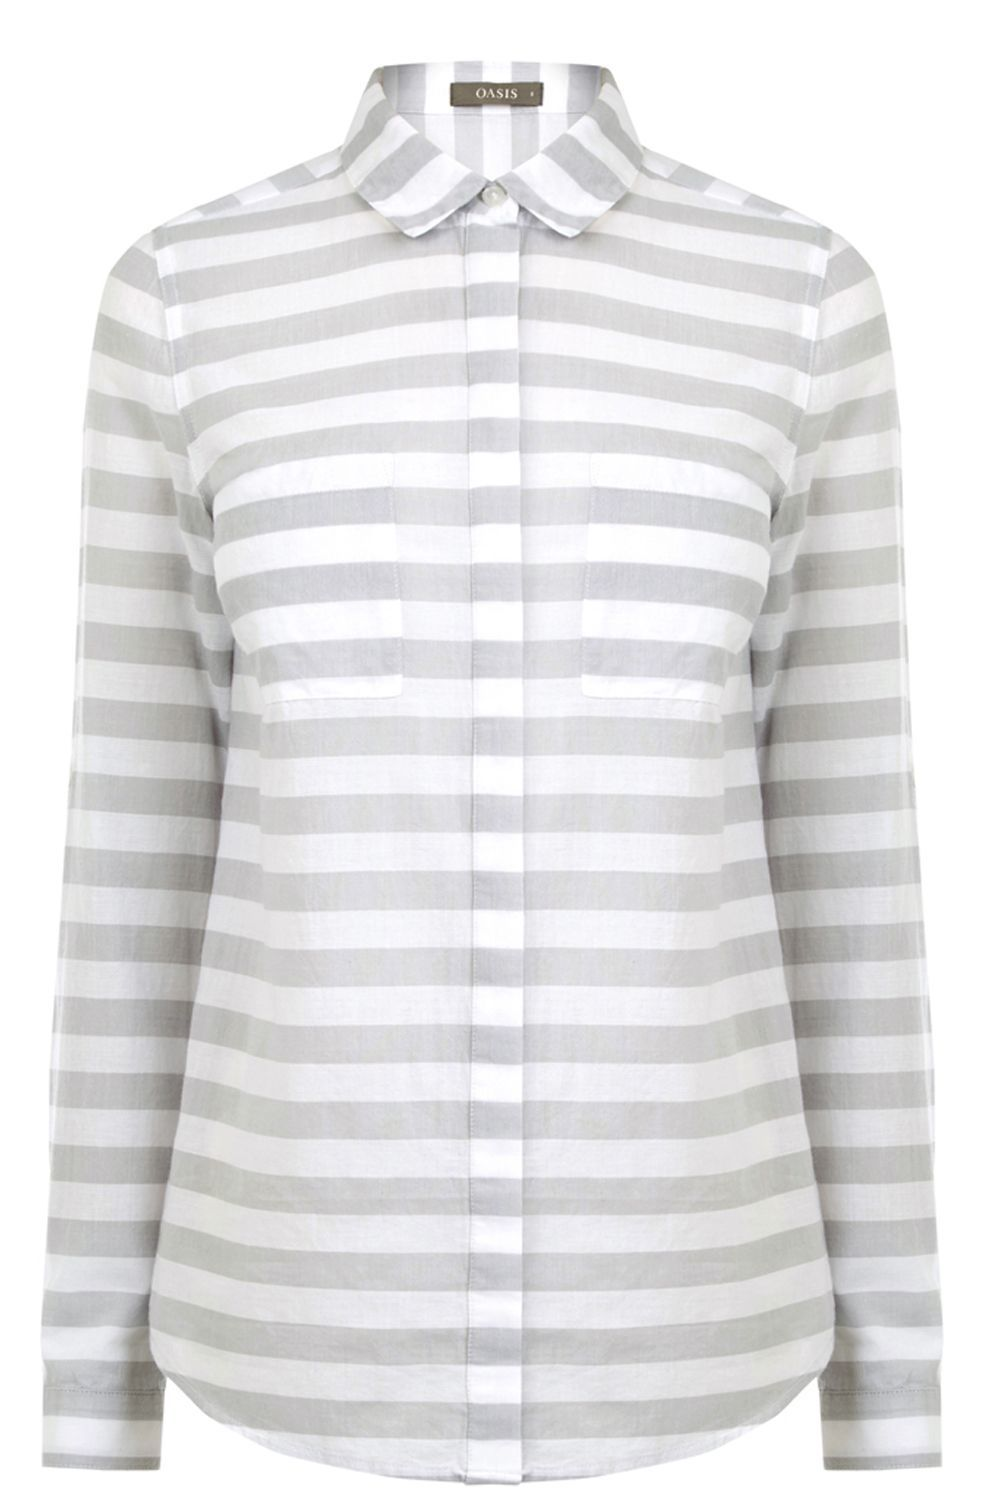 Stripe Shirt, White - neckline: shirt collar/peter pan/zip with opening; pattern: horizontal stripes; style: shirt; secondary colour: white; predominant colour: mid grey; occasions: casual; length: standard; fibres: cotton - mix; fit: body skimming; sleeve length: long sleeve; sleeve style: standard; texture group: cotton feel fabrics; pattern type: fabric; multicoloured: multicoloured; wardrobe: basic; season: a/w 2016